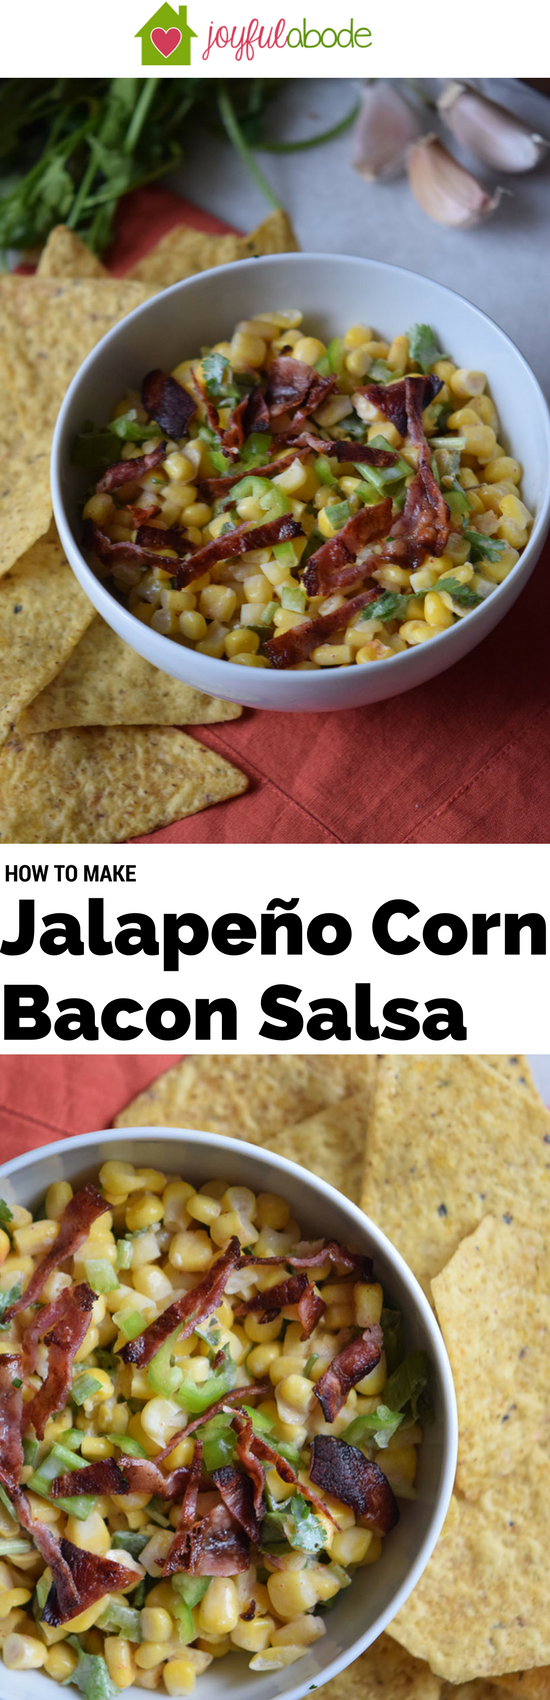 how to make jalapeno corn bacon salsa recipe